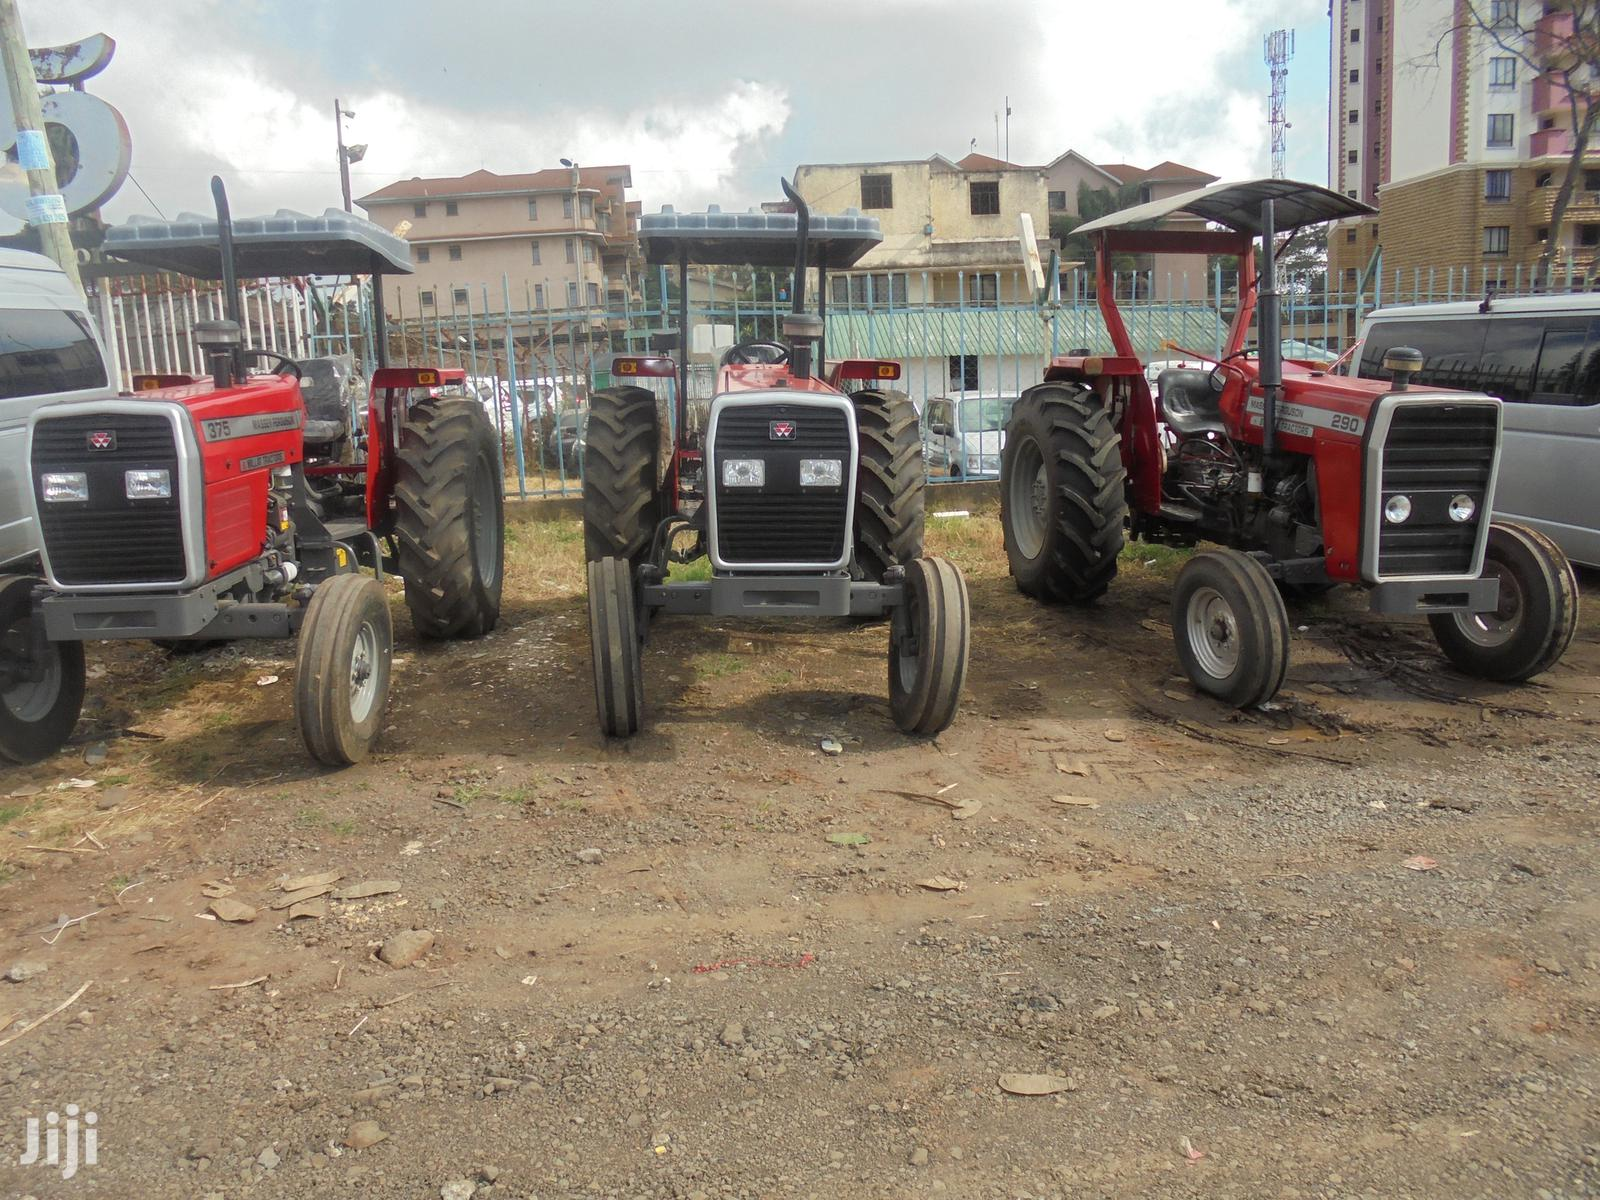 Famous Mf 290 90hp Tractor +All Accessories On Sale | Heavy Equipment for sale in Nairobi Central, Nairobi, Kenya